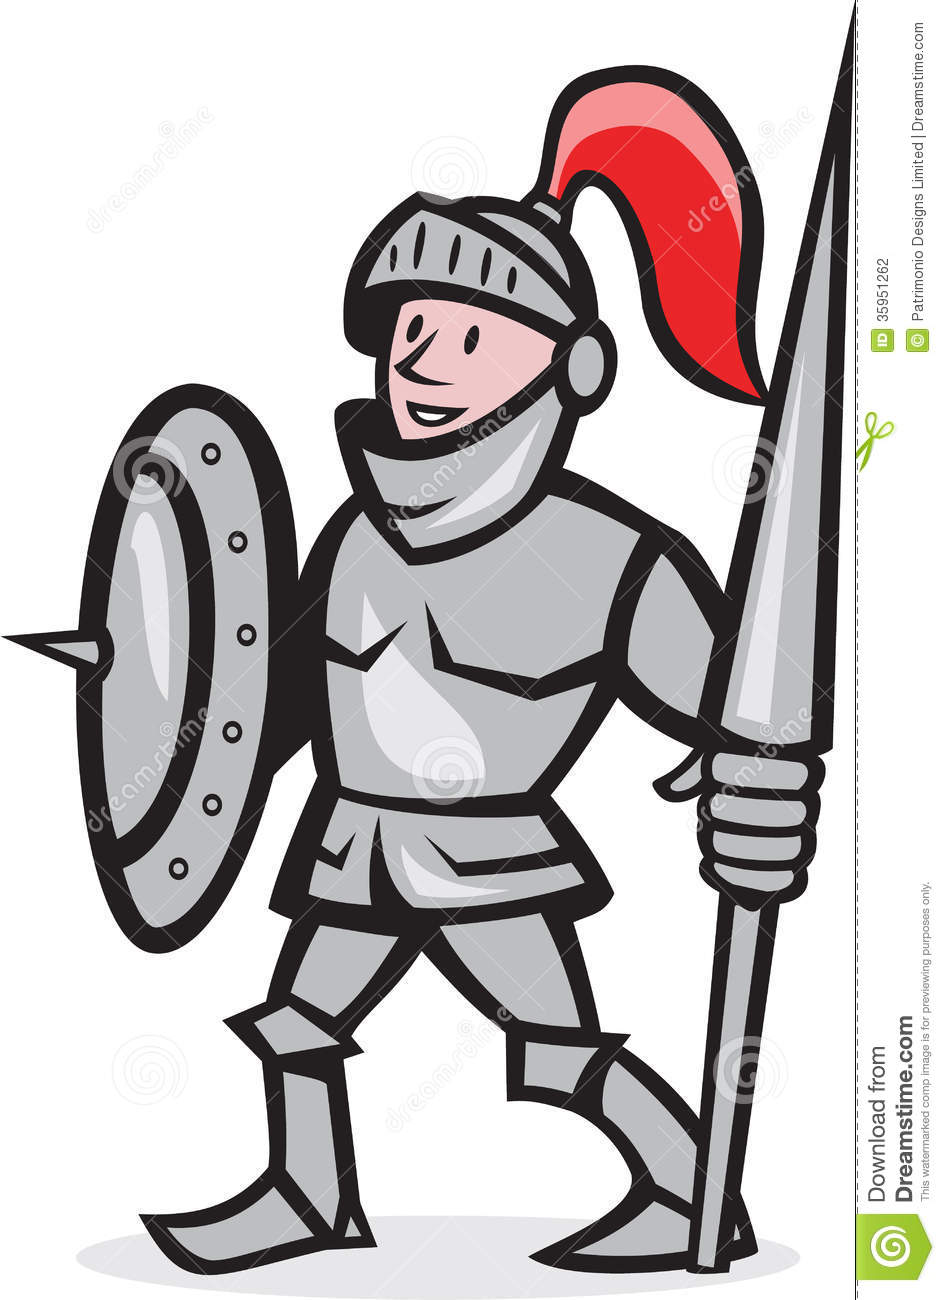 Knight Clipart - Clipart Kid